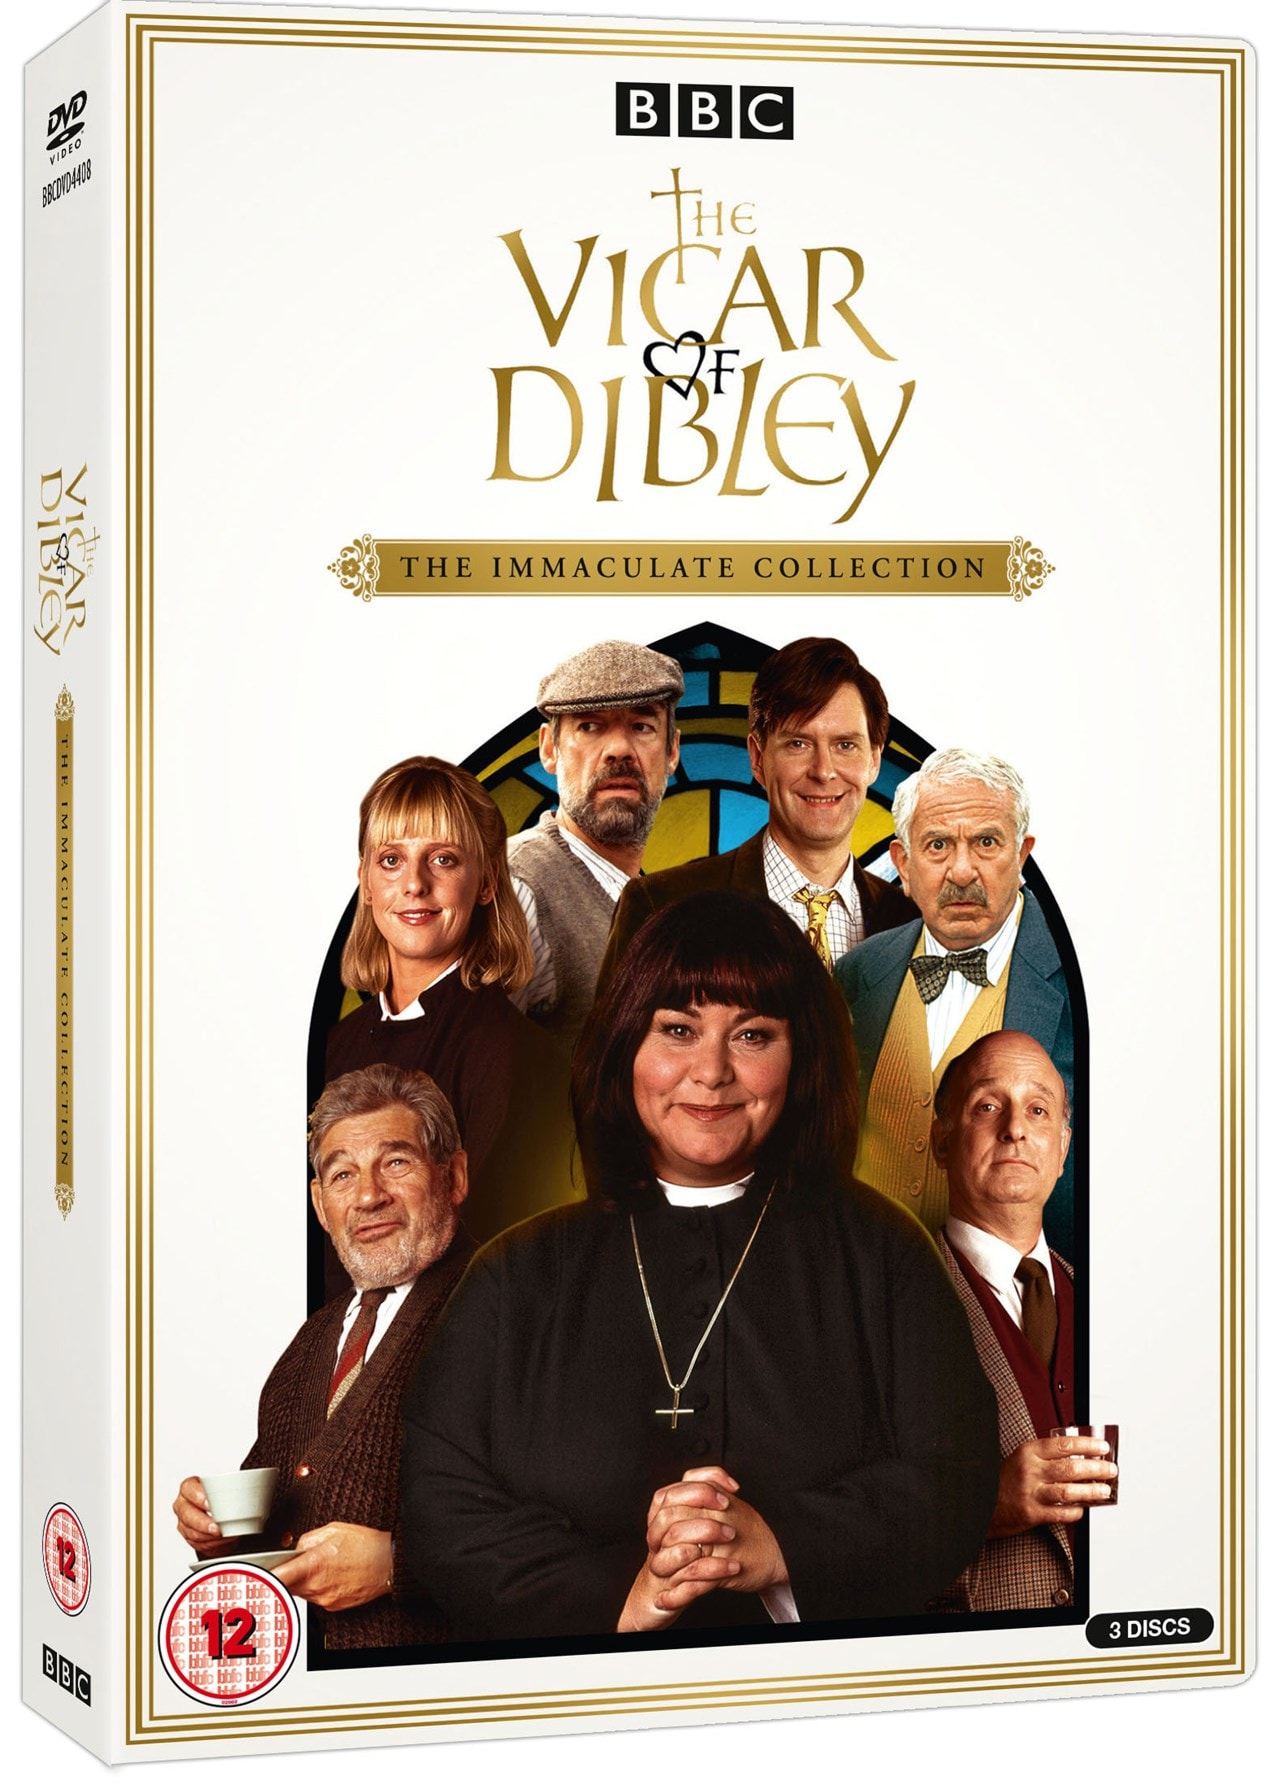 The Vicar of Dibley: The Immaculate Collection - 2